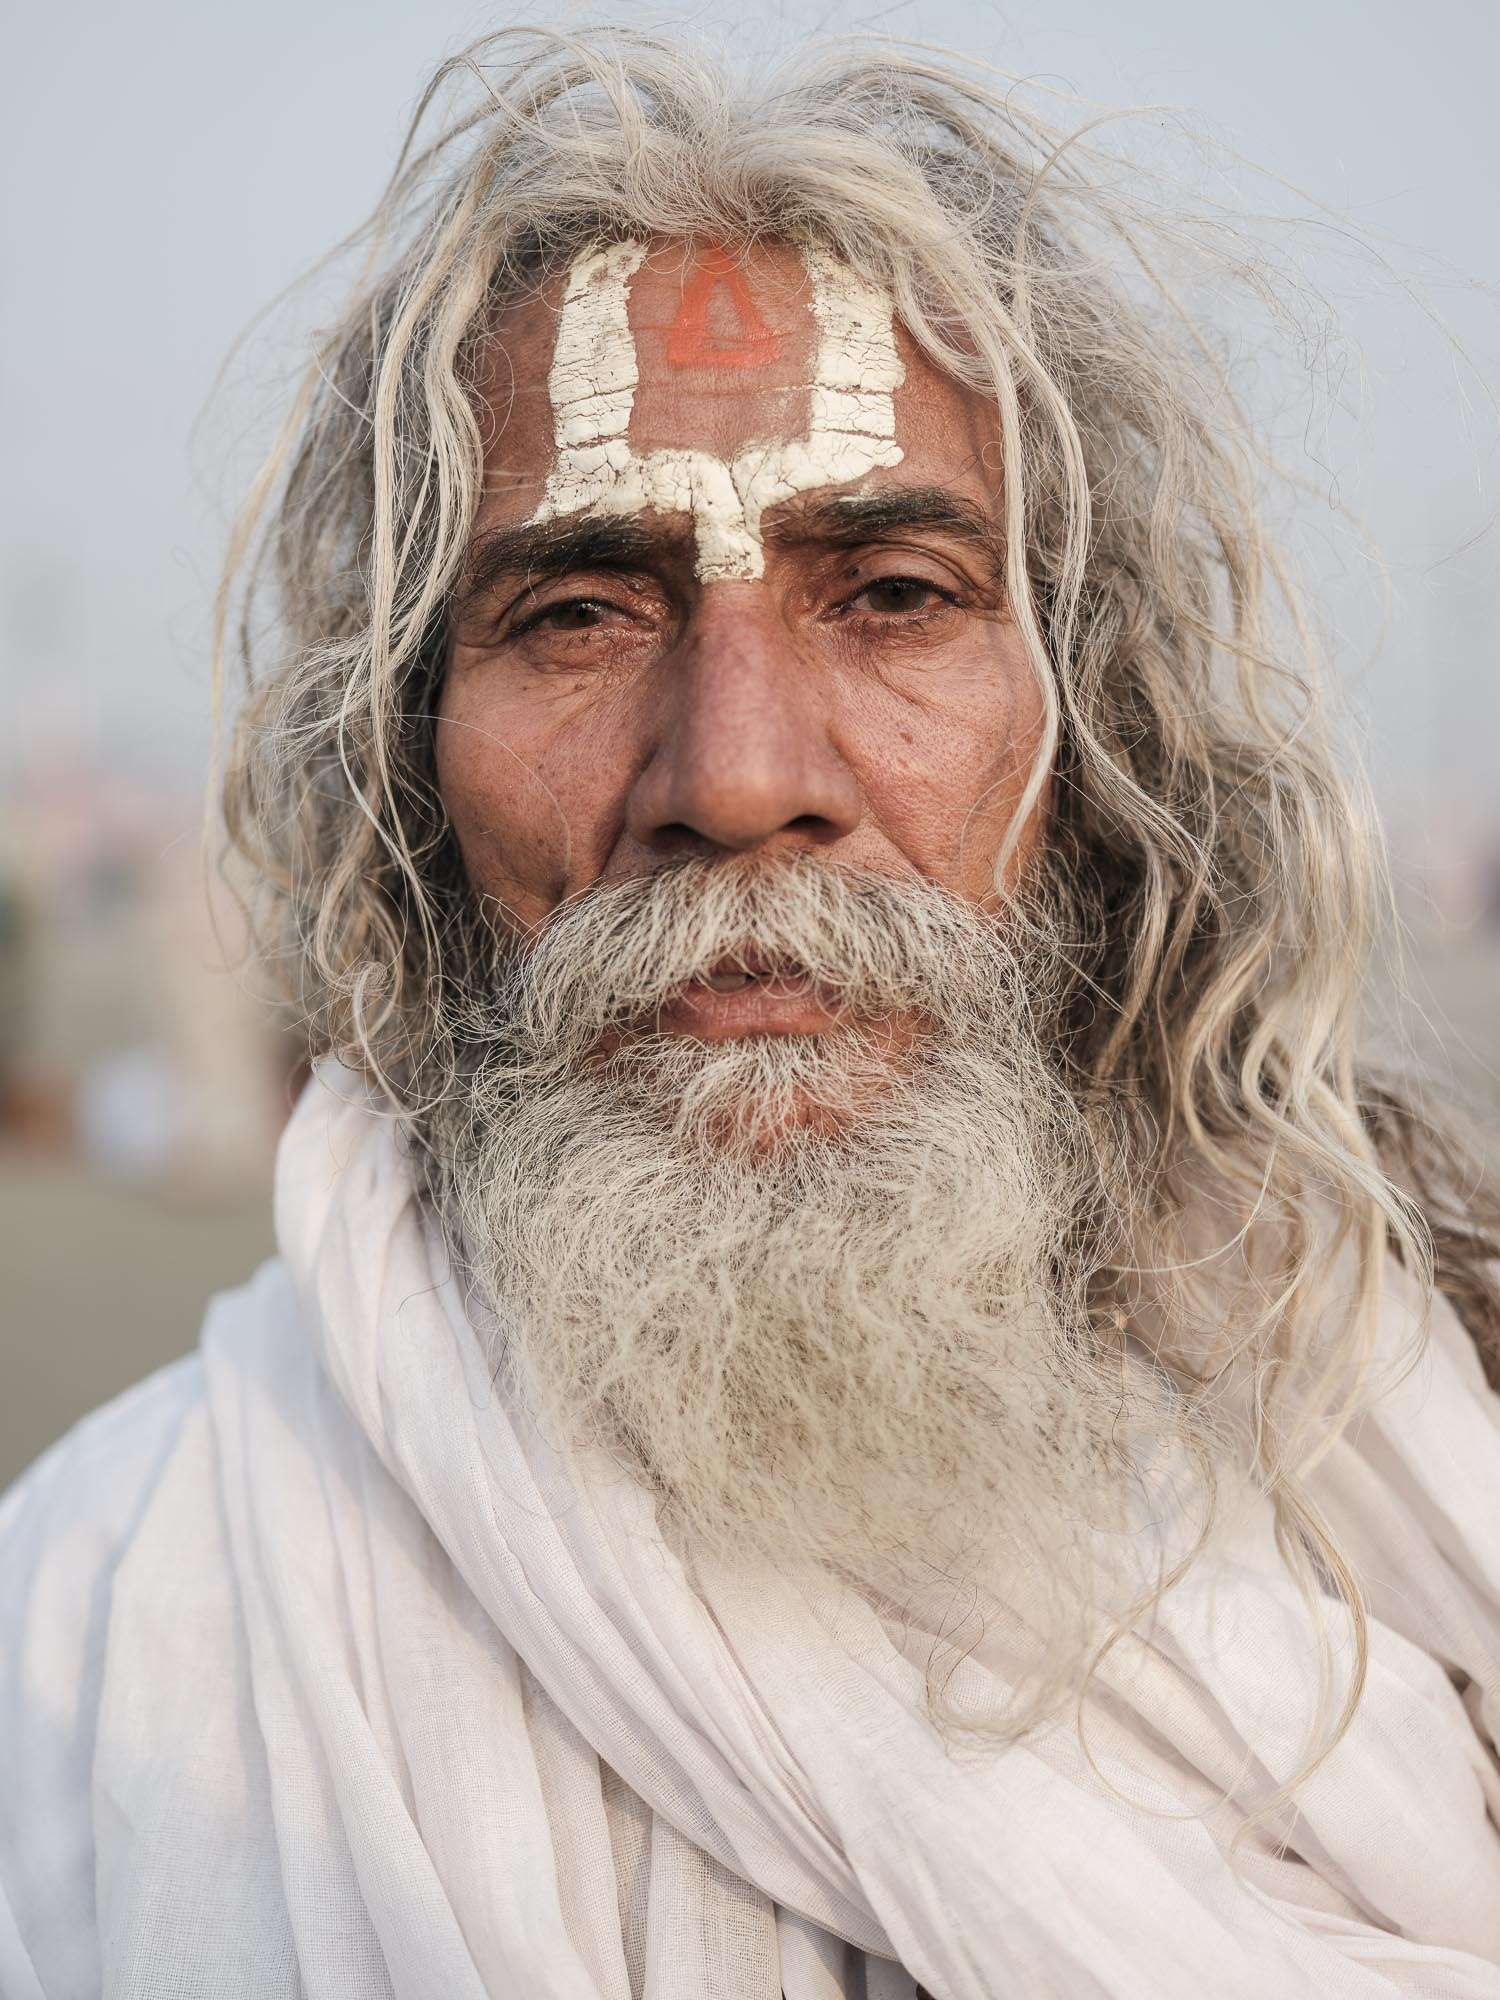 India old man Kumbh mela Commercial Editorial Portraiture Documentary Photographer fujifilm Director Singapore Jose Jeuland photography fashion